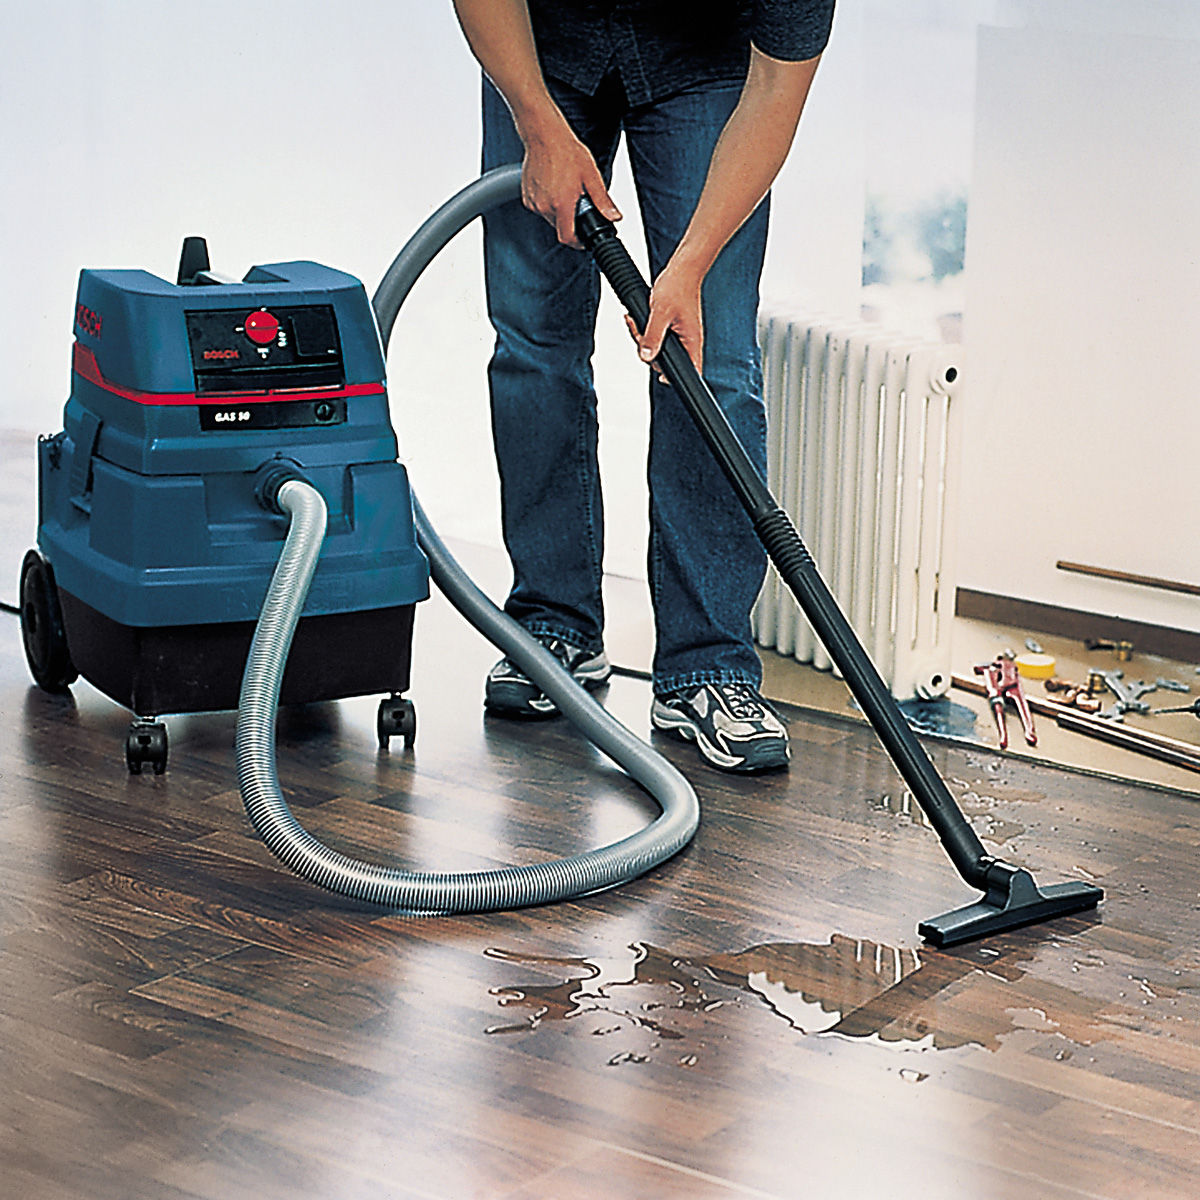 Bosch Universal Turbo Brush: Toolstop Bosch GAS50 Wet And Dry Universal Dust Extractor